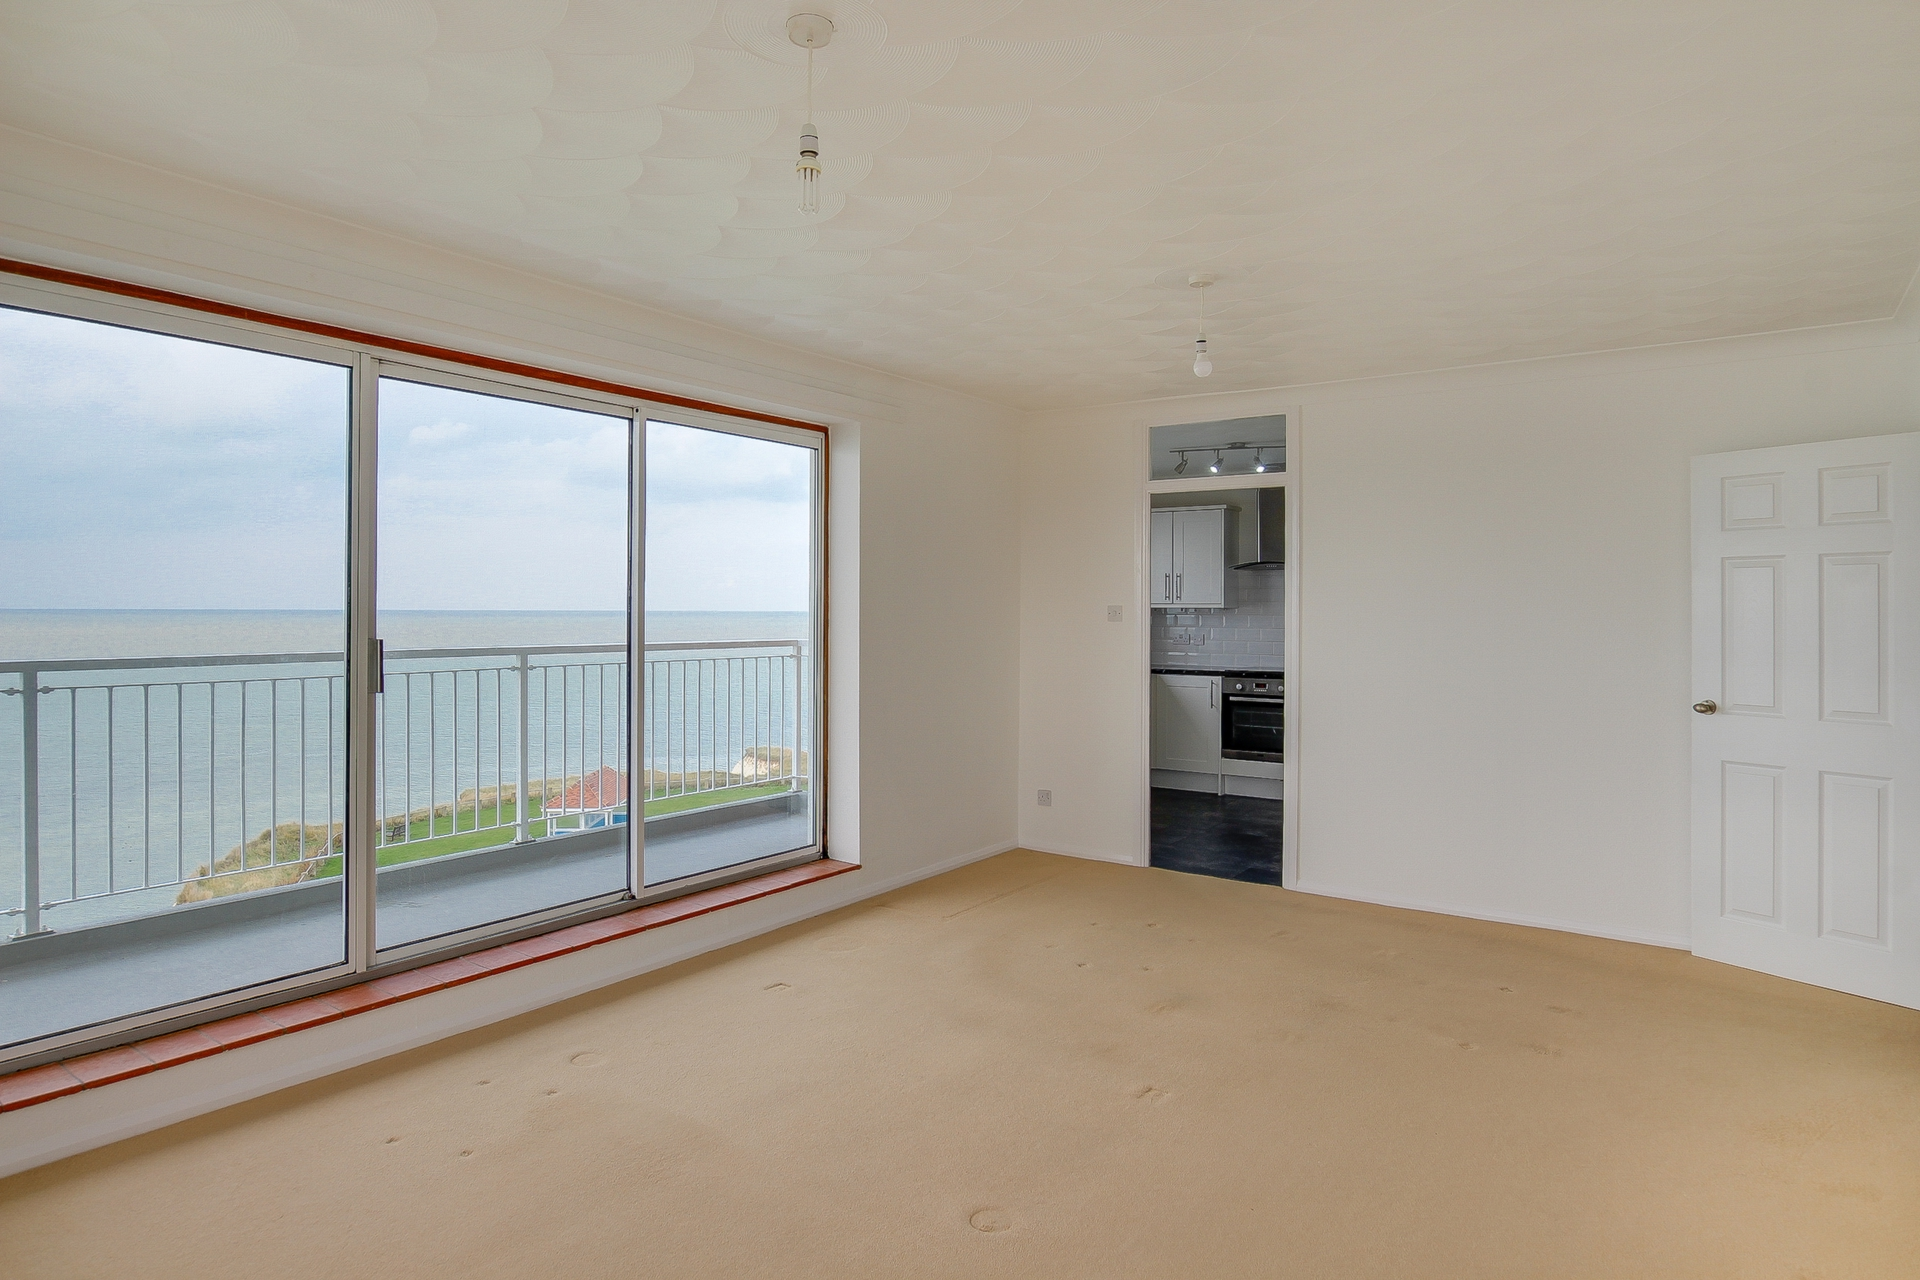 2 bed flat to rent in The Parade, Minnis Bay, CT7 3